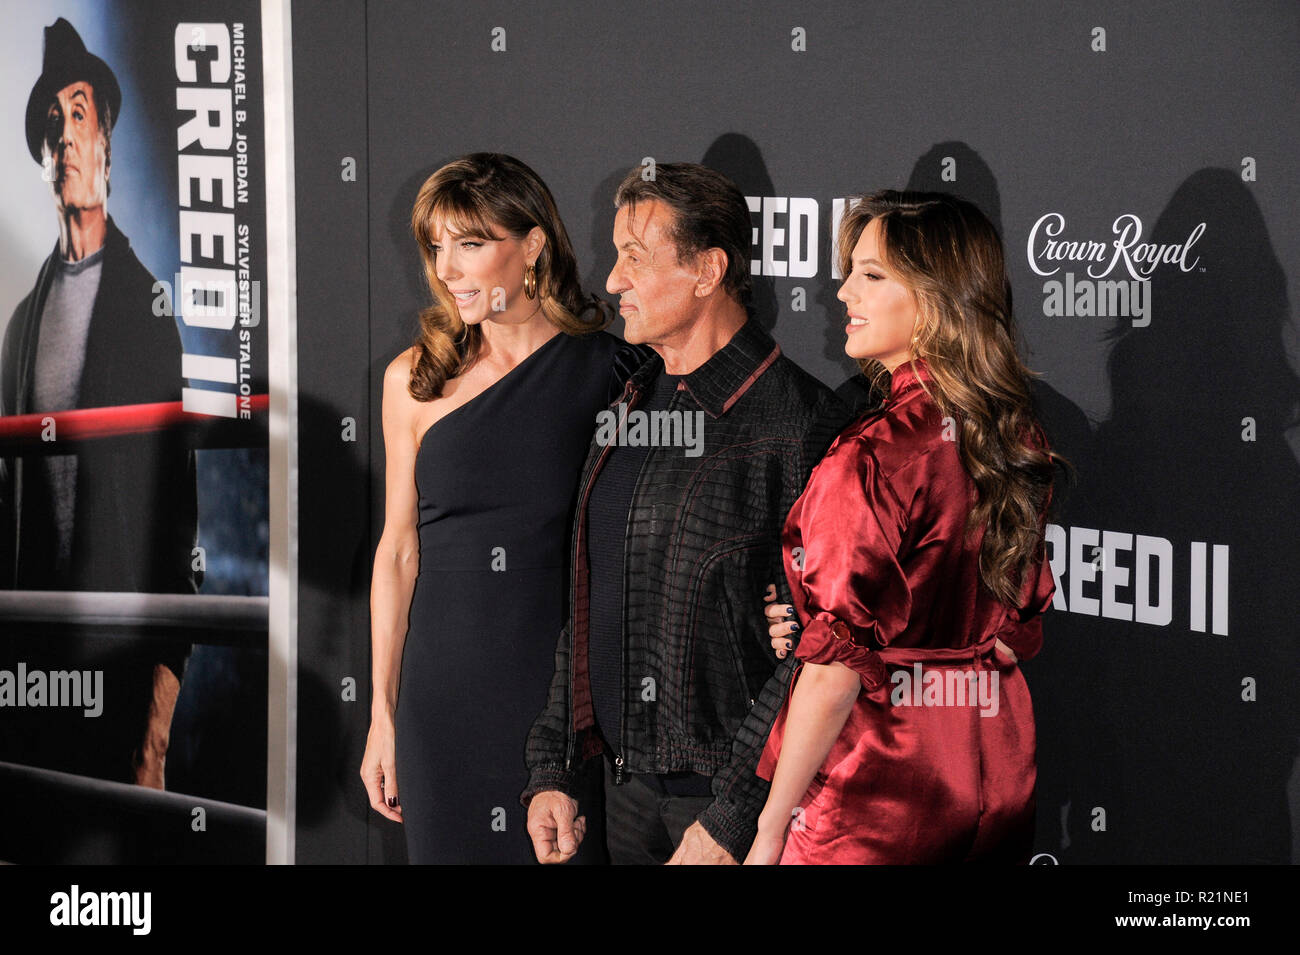 NEW YORK, NY - NOVEMBER 14: Jennifer Flavin, Sylvester Stallone and Sophia Rose Stallone attends 'Creed II' World Premiere at AMC Loews Lincoln Square - Stock Image